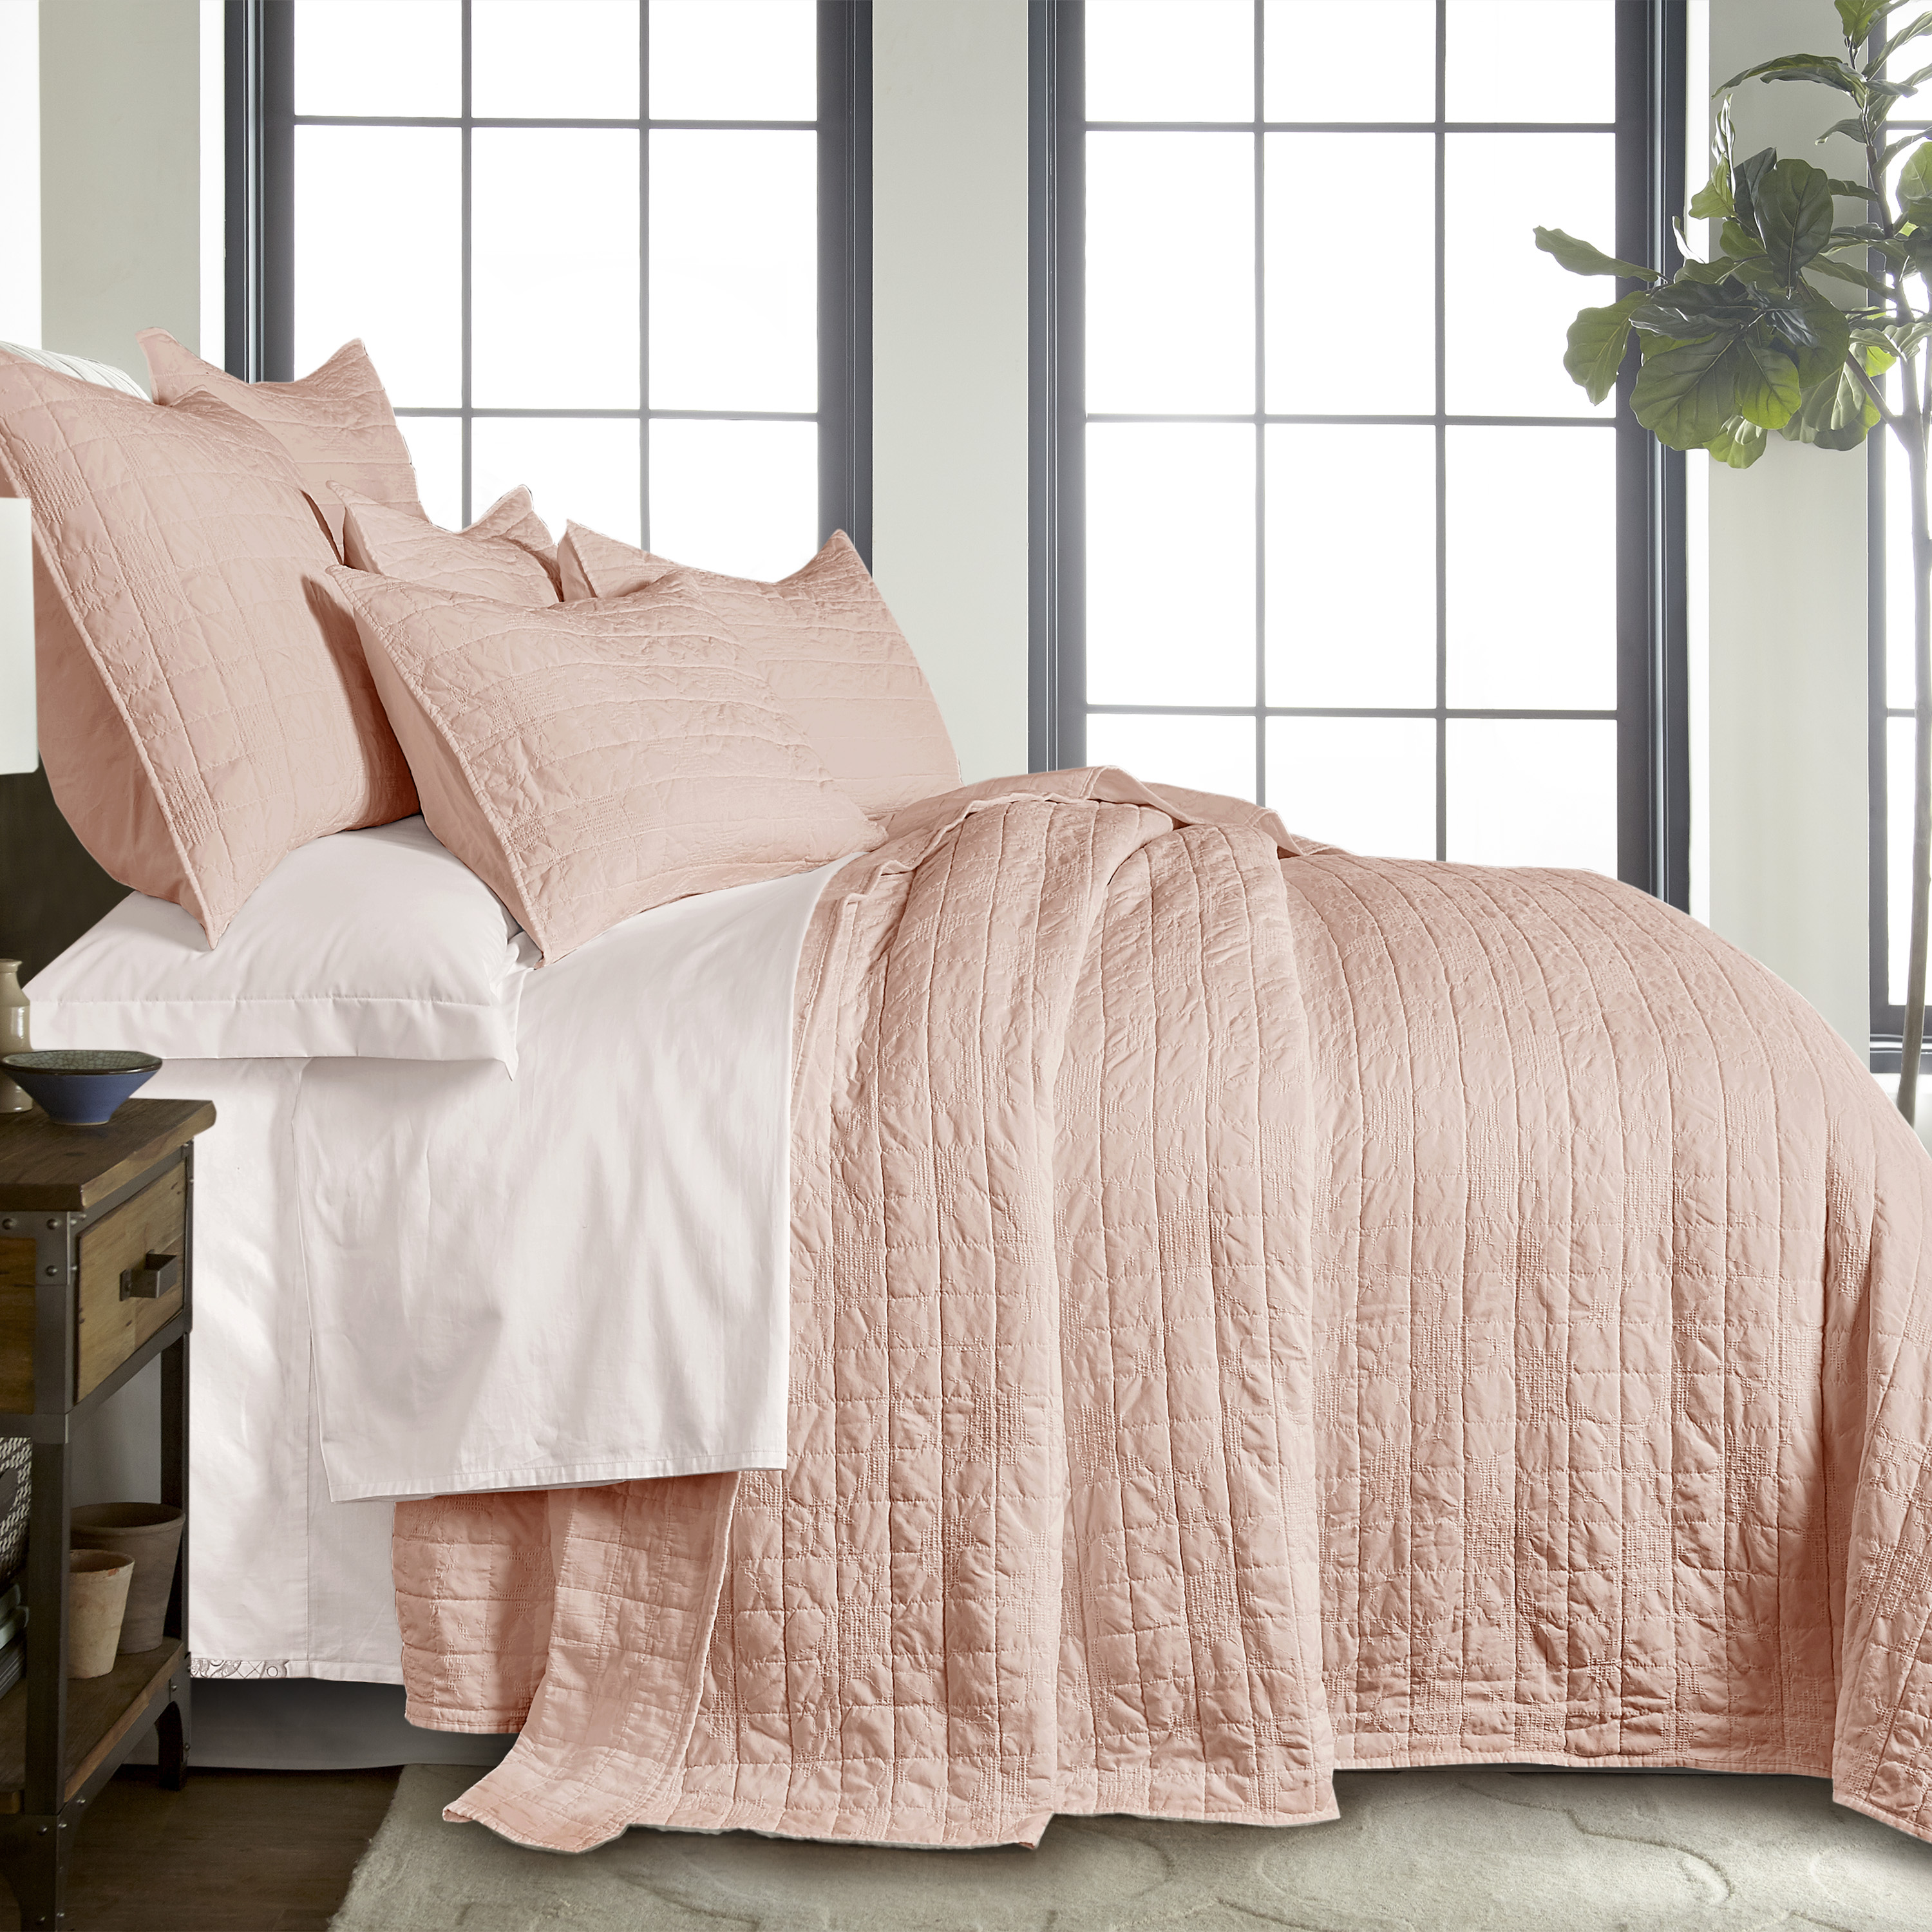 homthreads bowie bedspread set queen bedspread two standard pillow shams microfiber jacquard geo floral blush pink bedspread size 102 x 118 in and pillow sham size 26 x 20 in walmart com walmart com